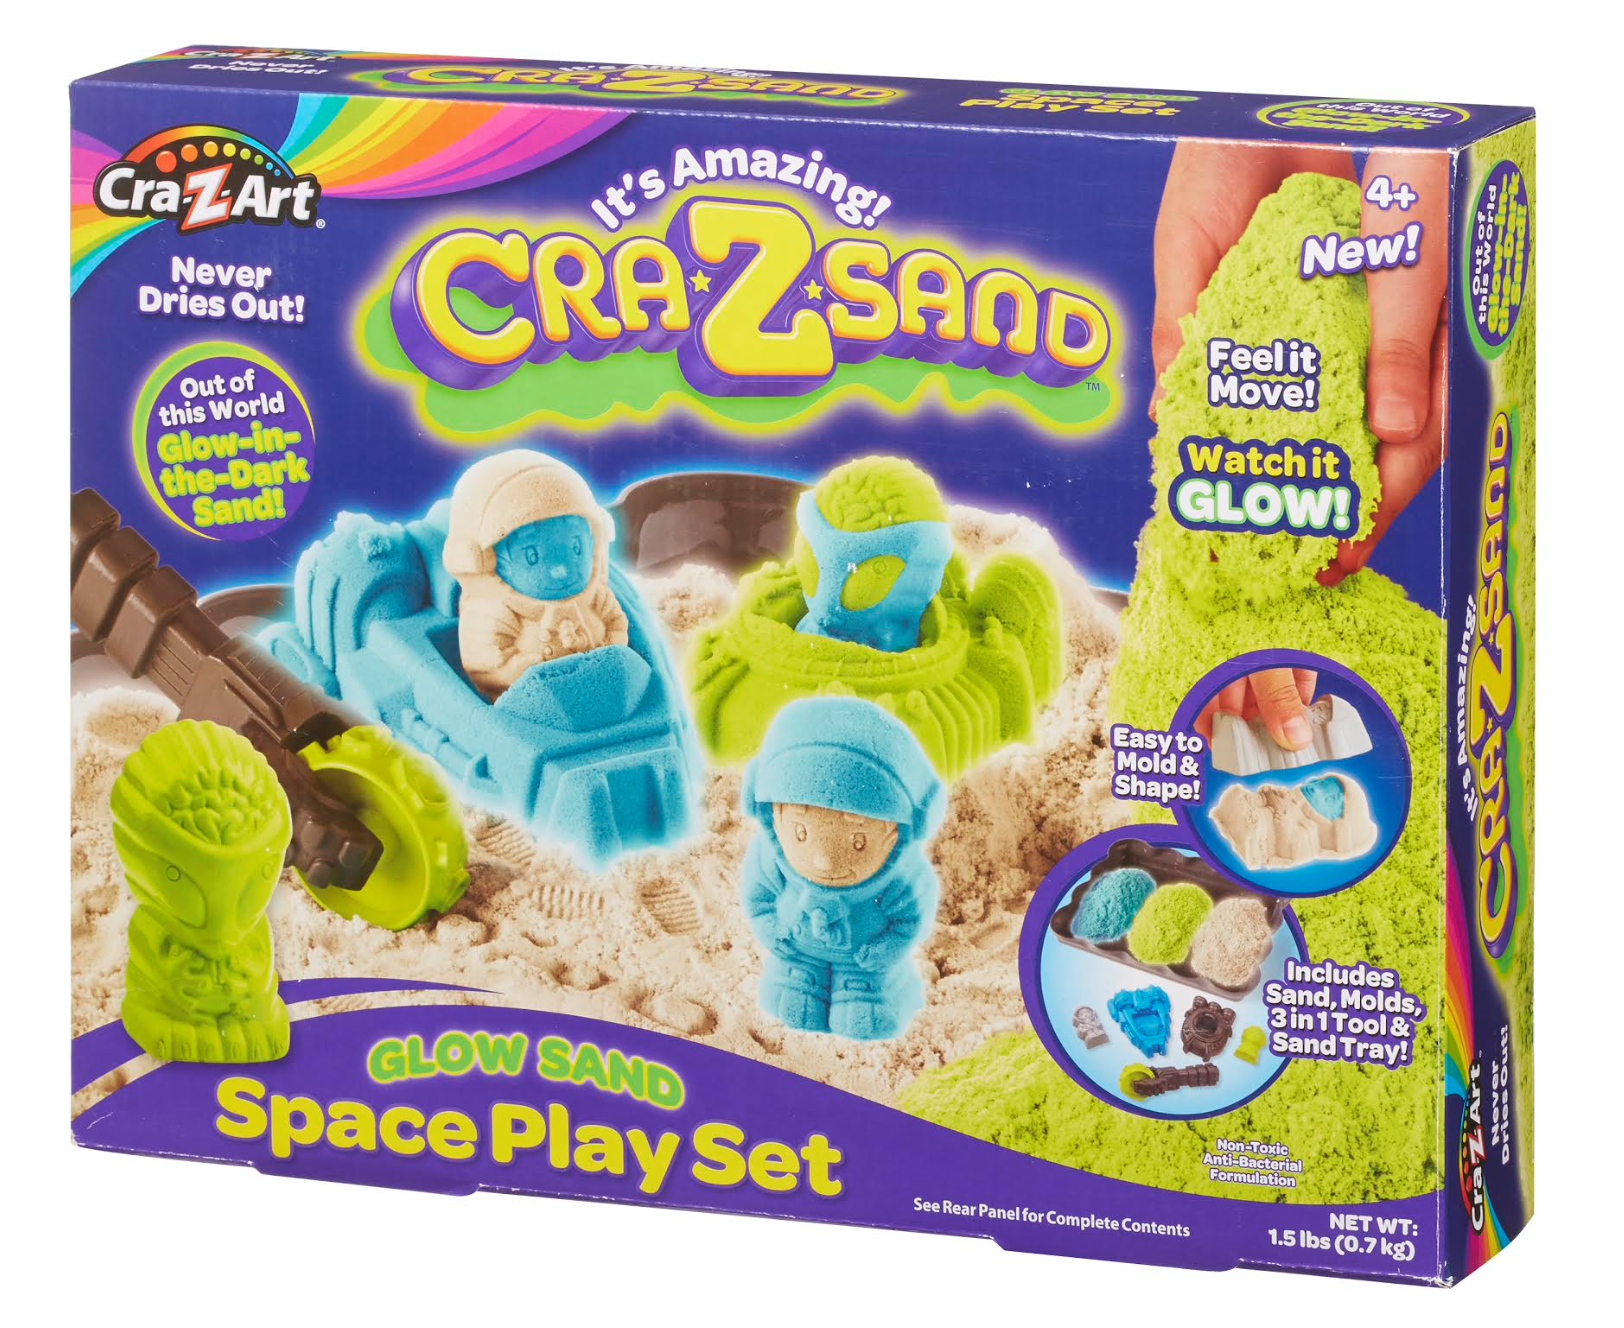 Cra-Z-Sand Glow in the dark play set